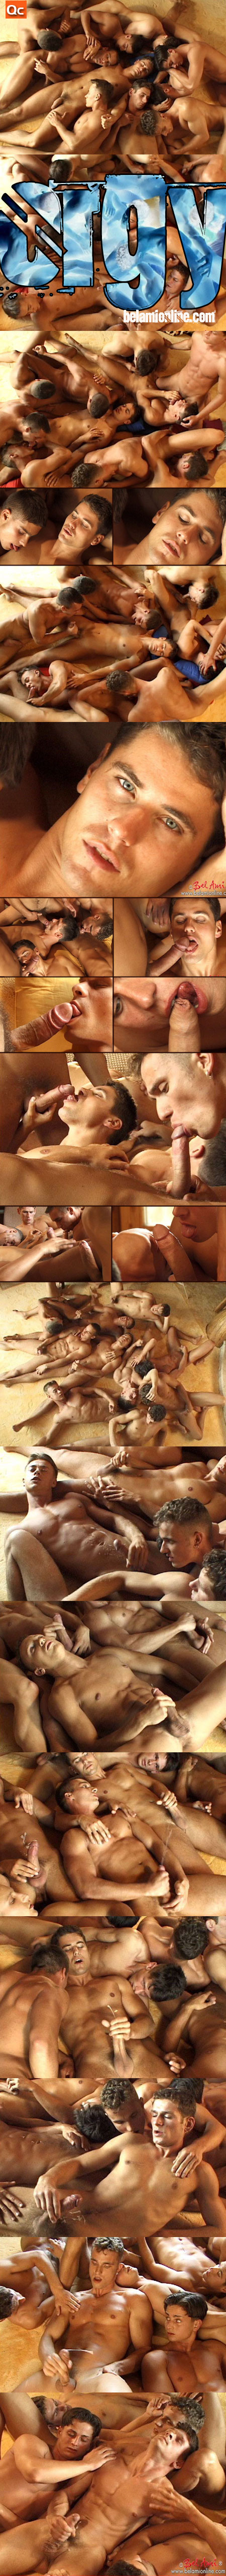 bel ami cover boy orgy